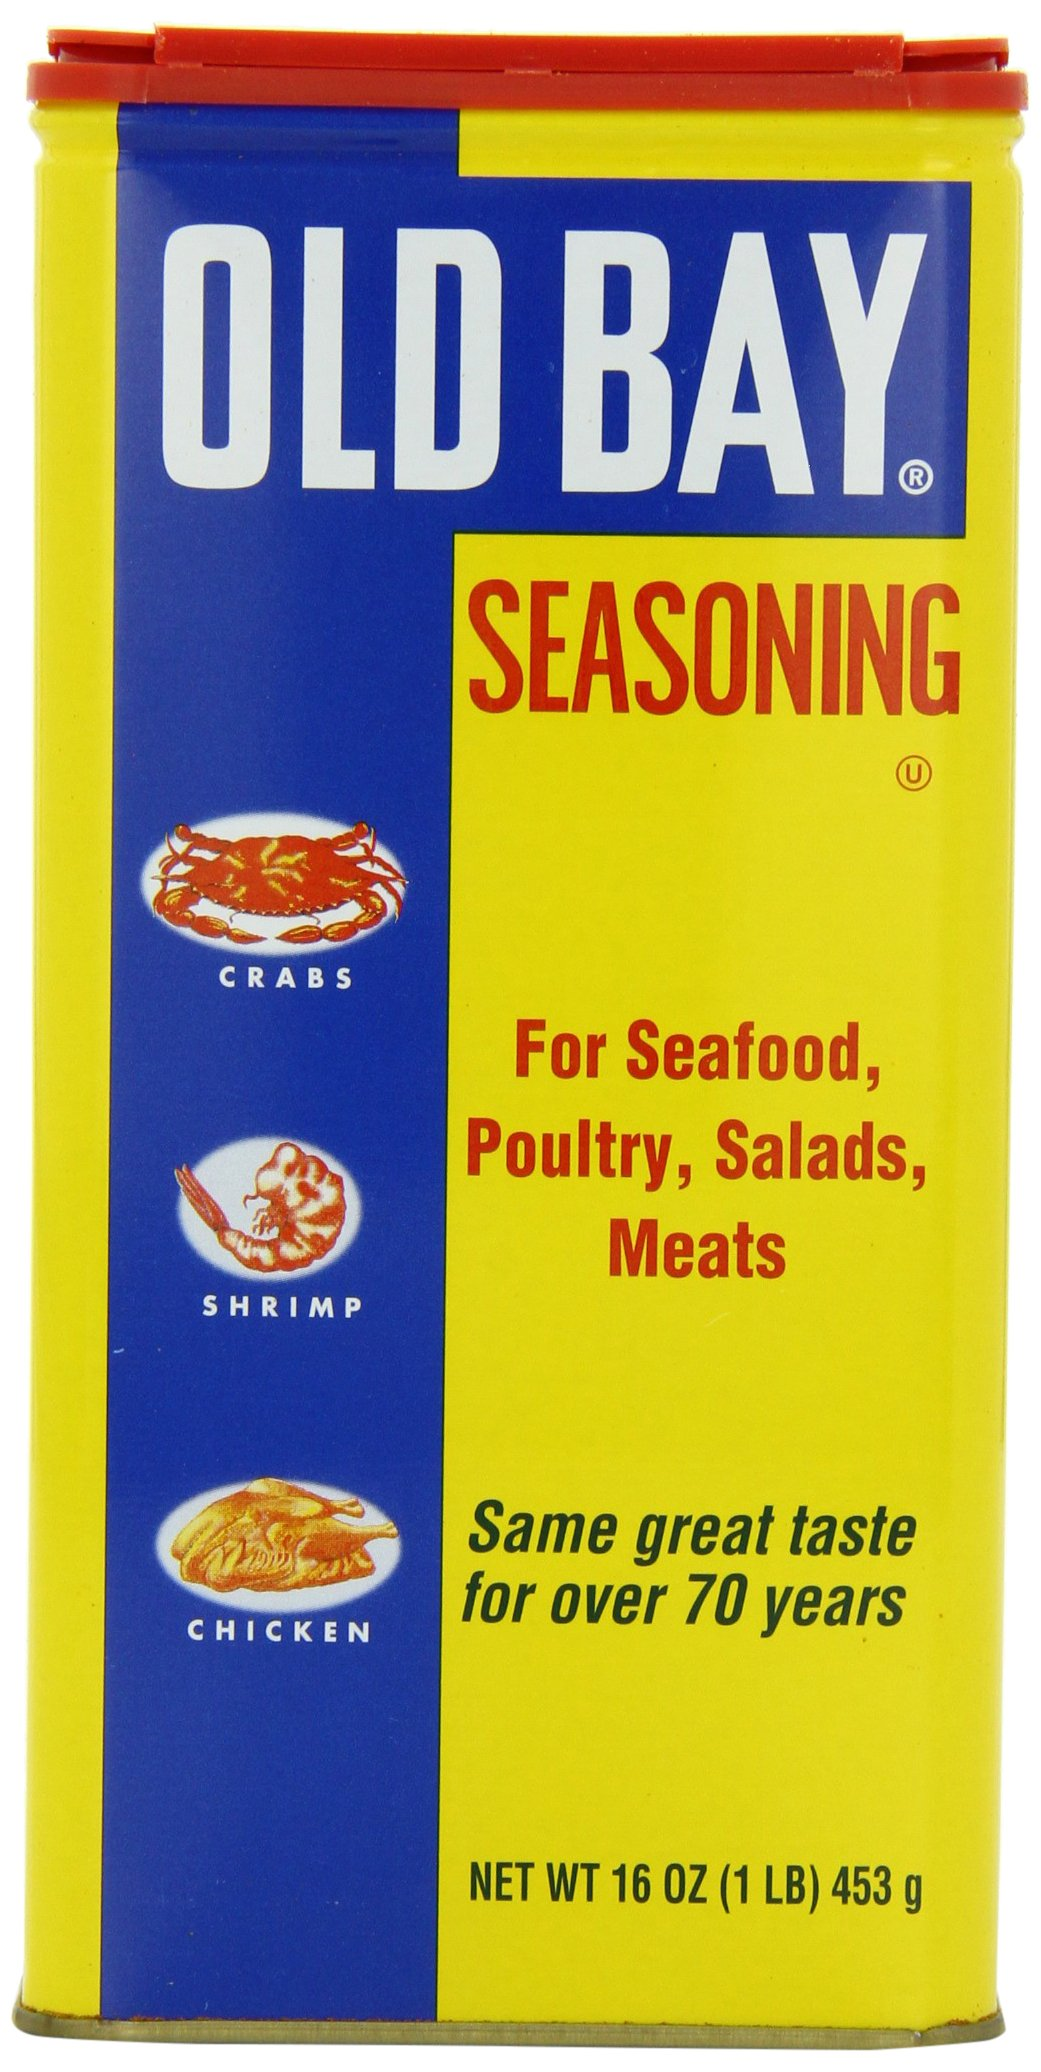 OLD BAY Seasoning, 24 oz by Old Bay